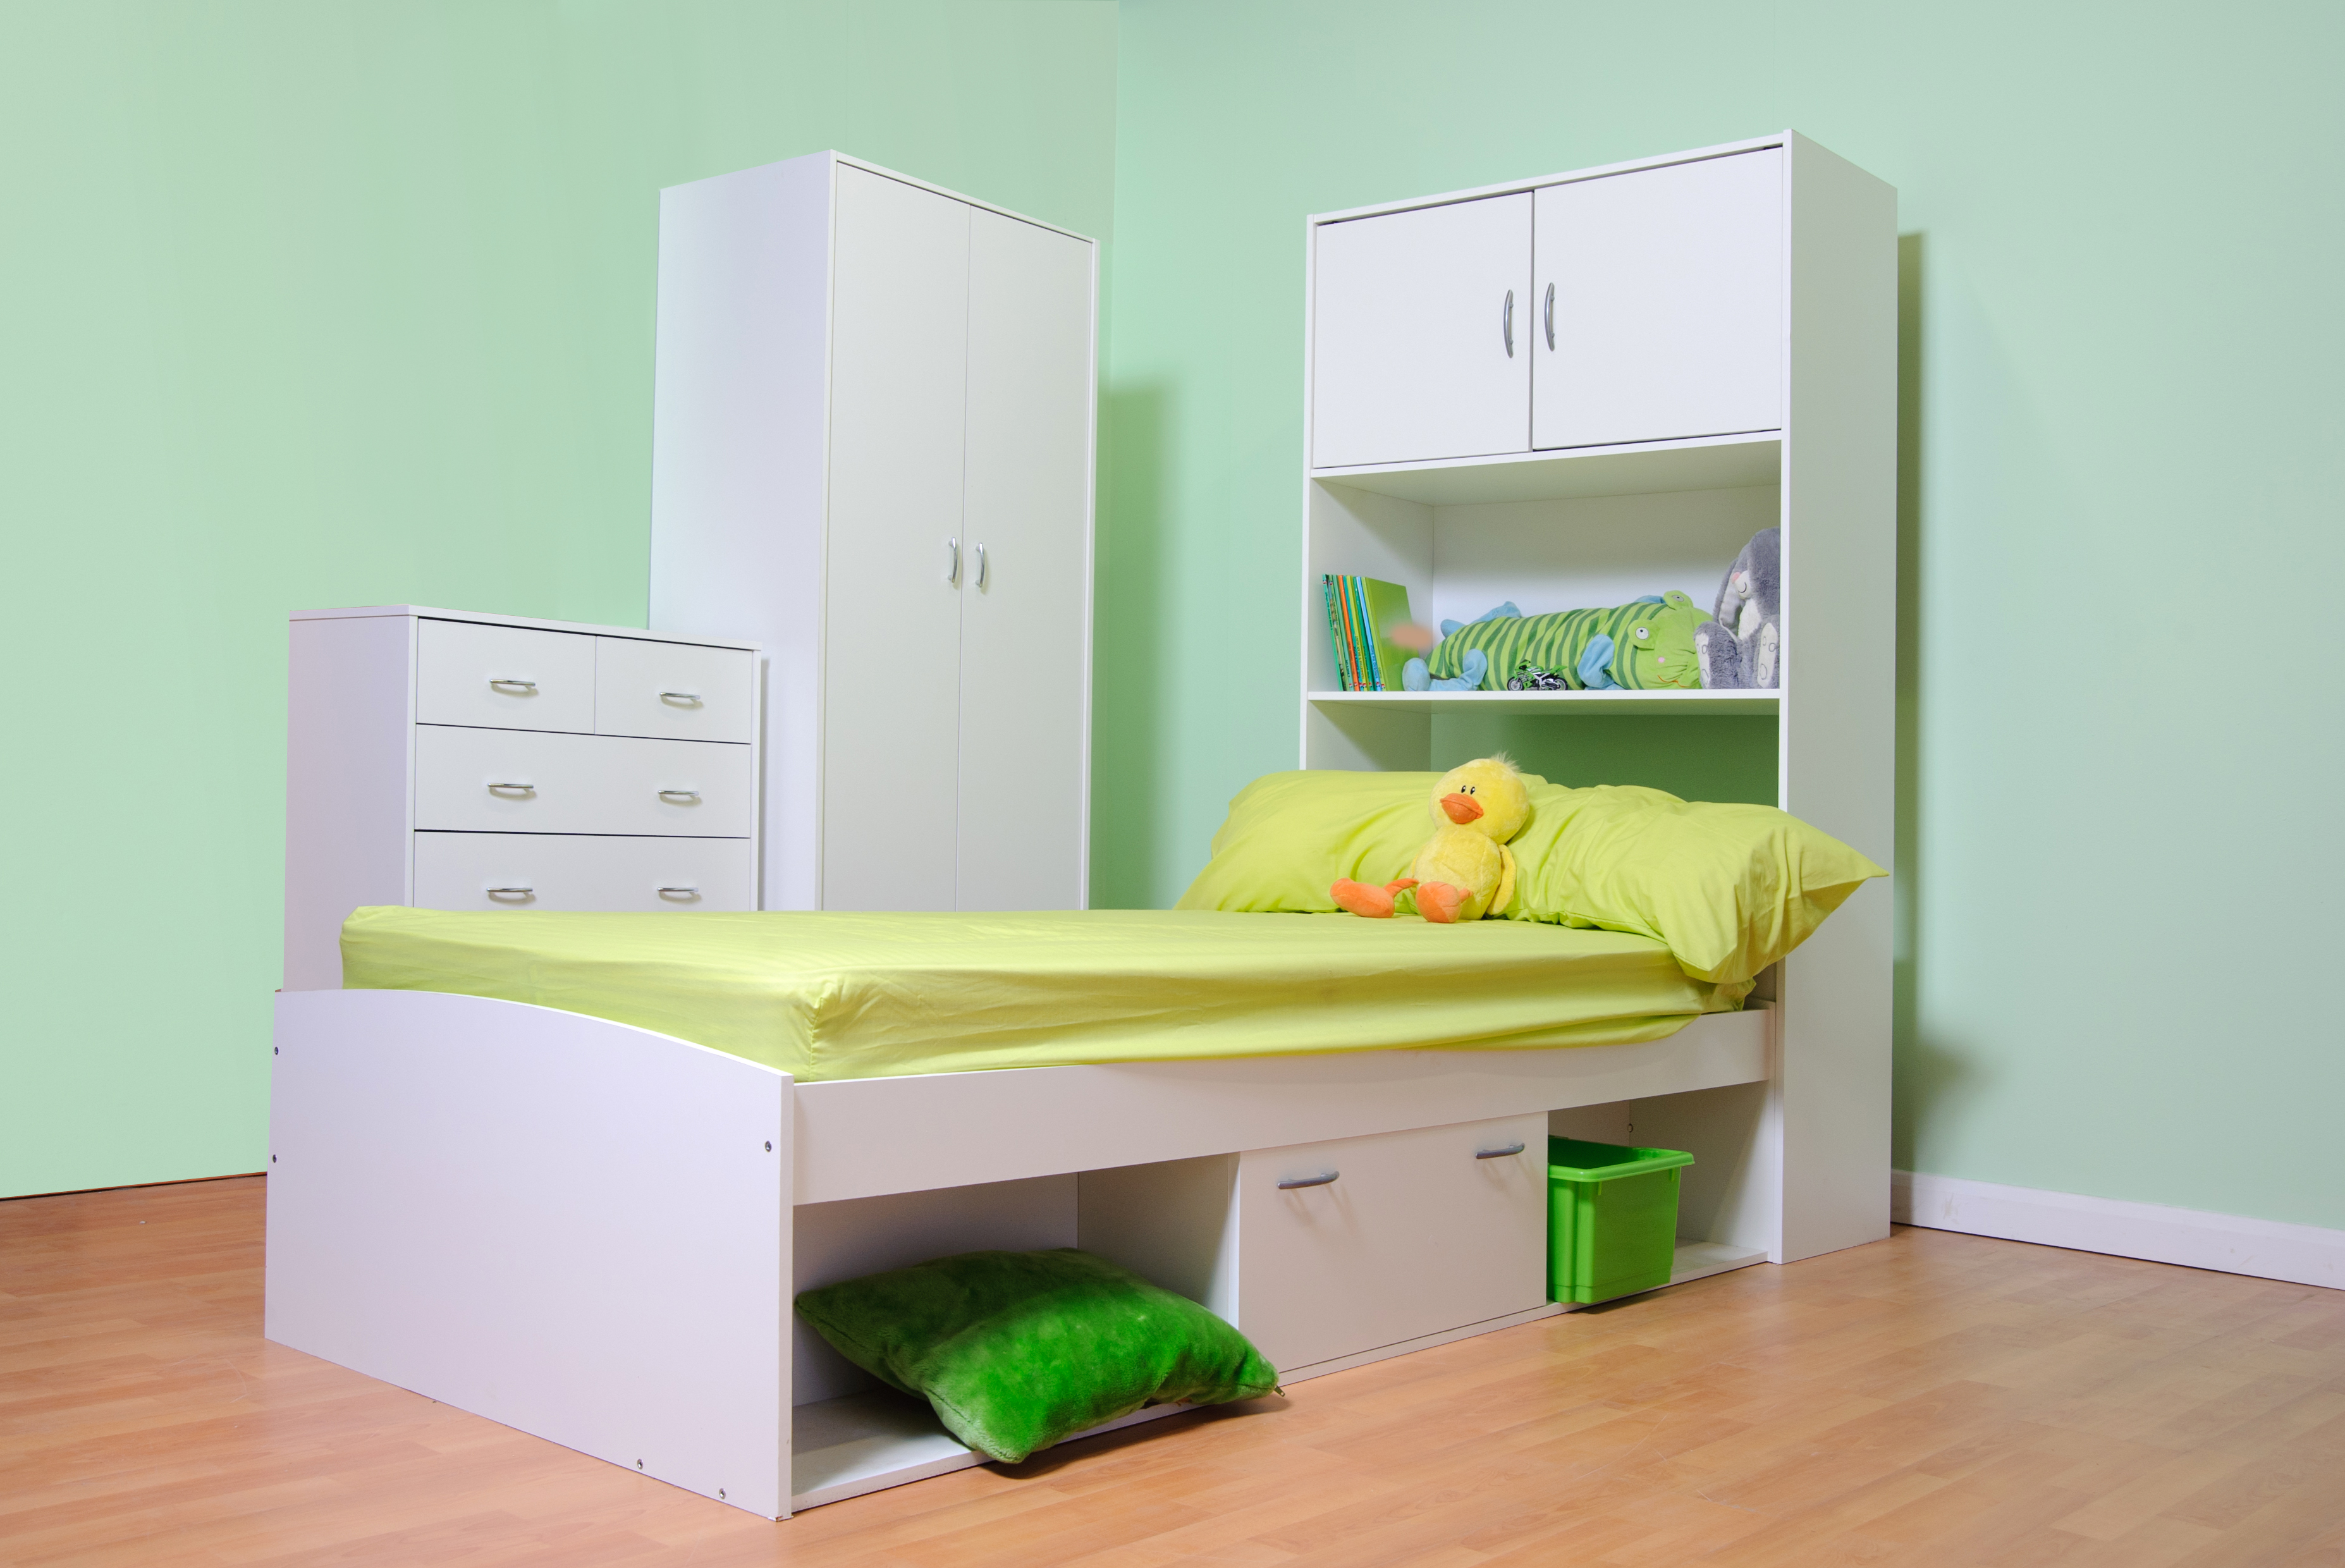 girls images cabin size beds bedroom systems youth new woode desk floor awesome wooden stairs boys loft for cabins ideas amazing full design kids modern ikea of with bed charming